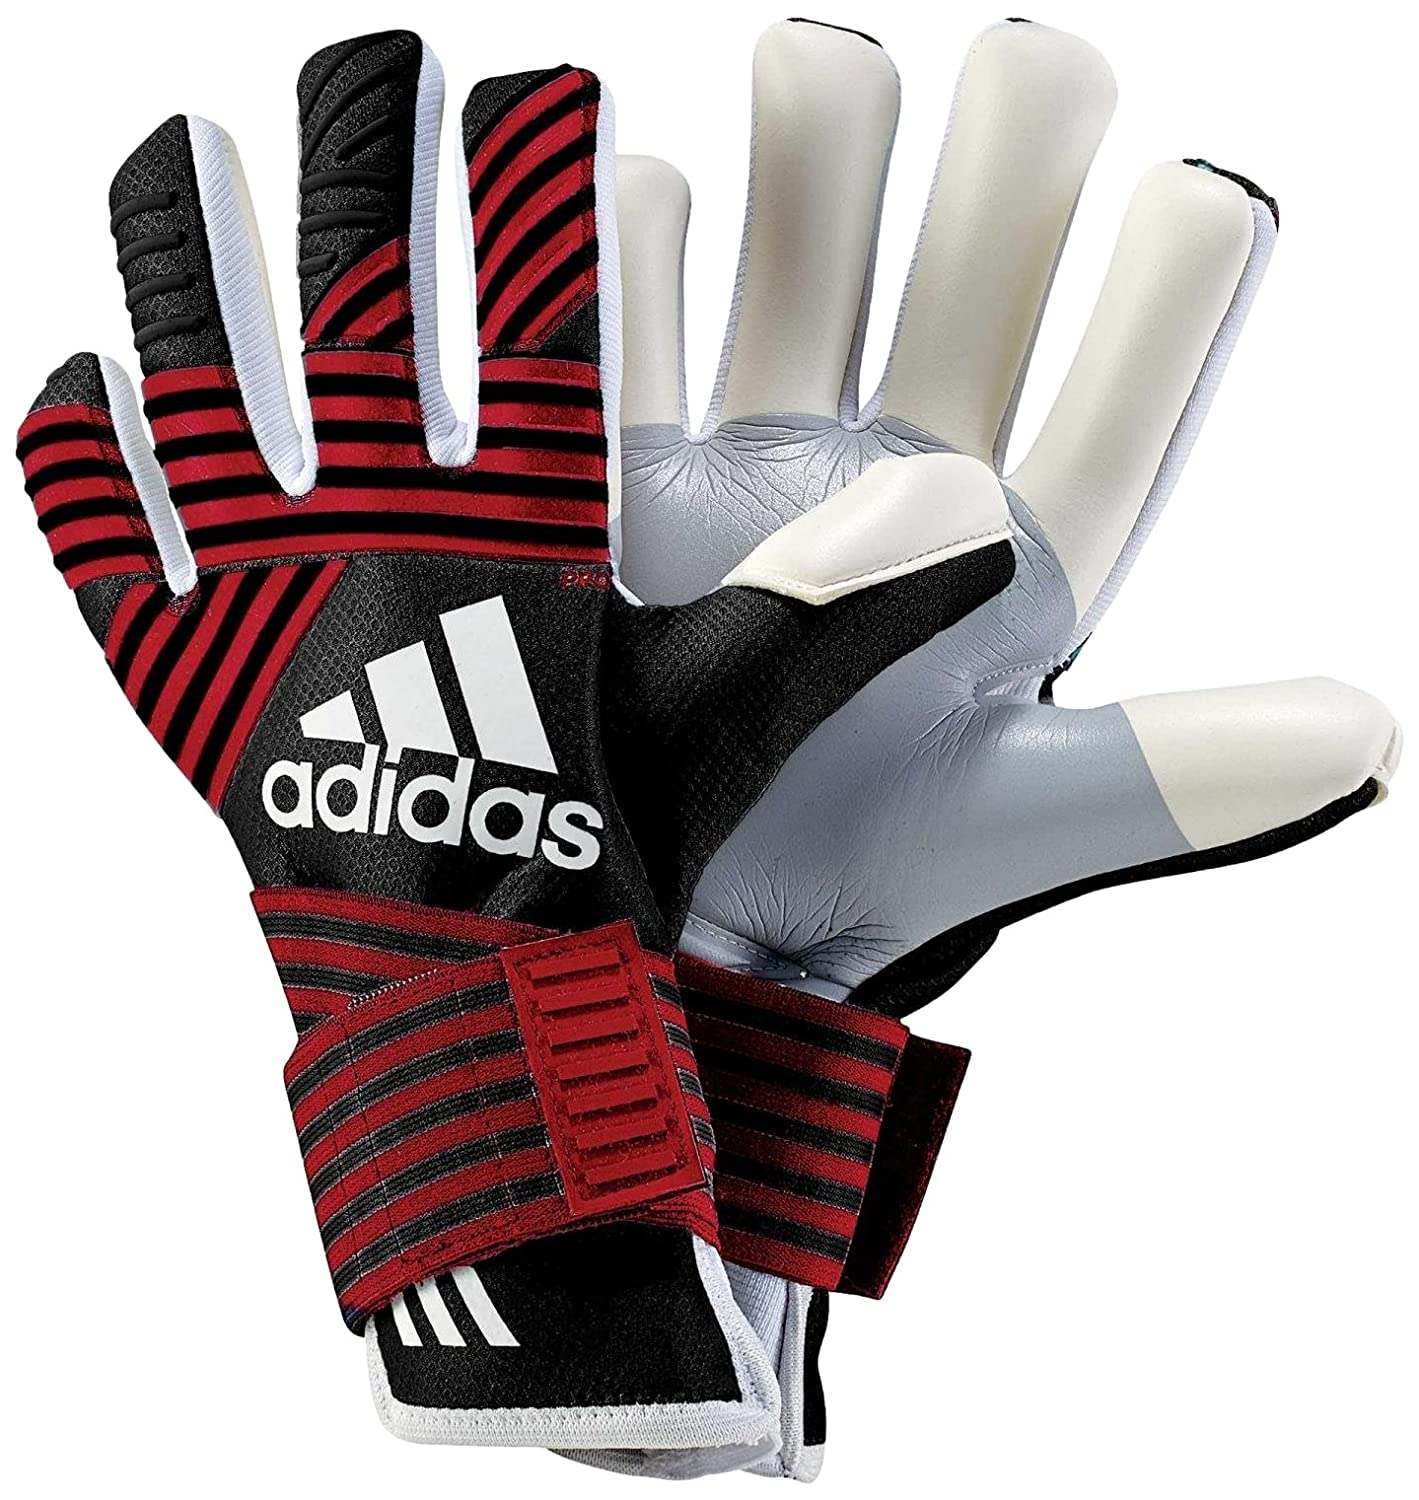 premium selection 387bb def07 Adidas Unisex Ace Trans Pro MN Goalkeeper Gloves